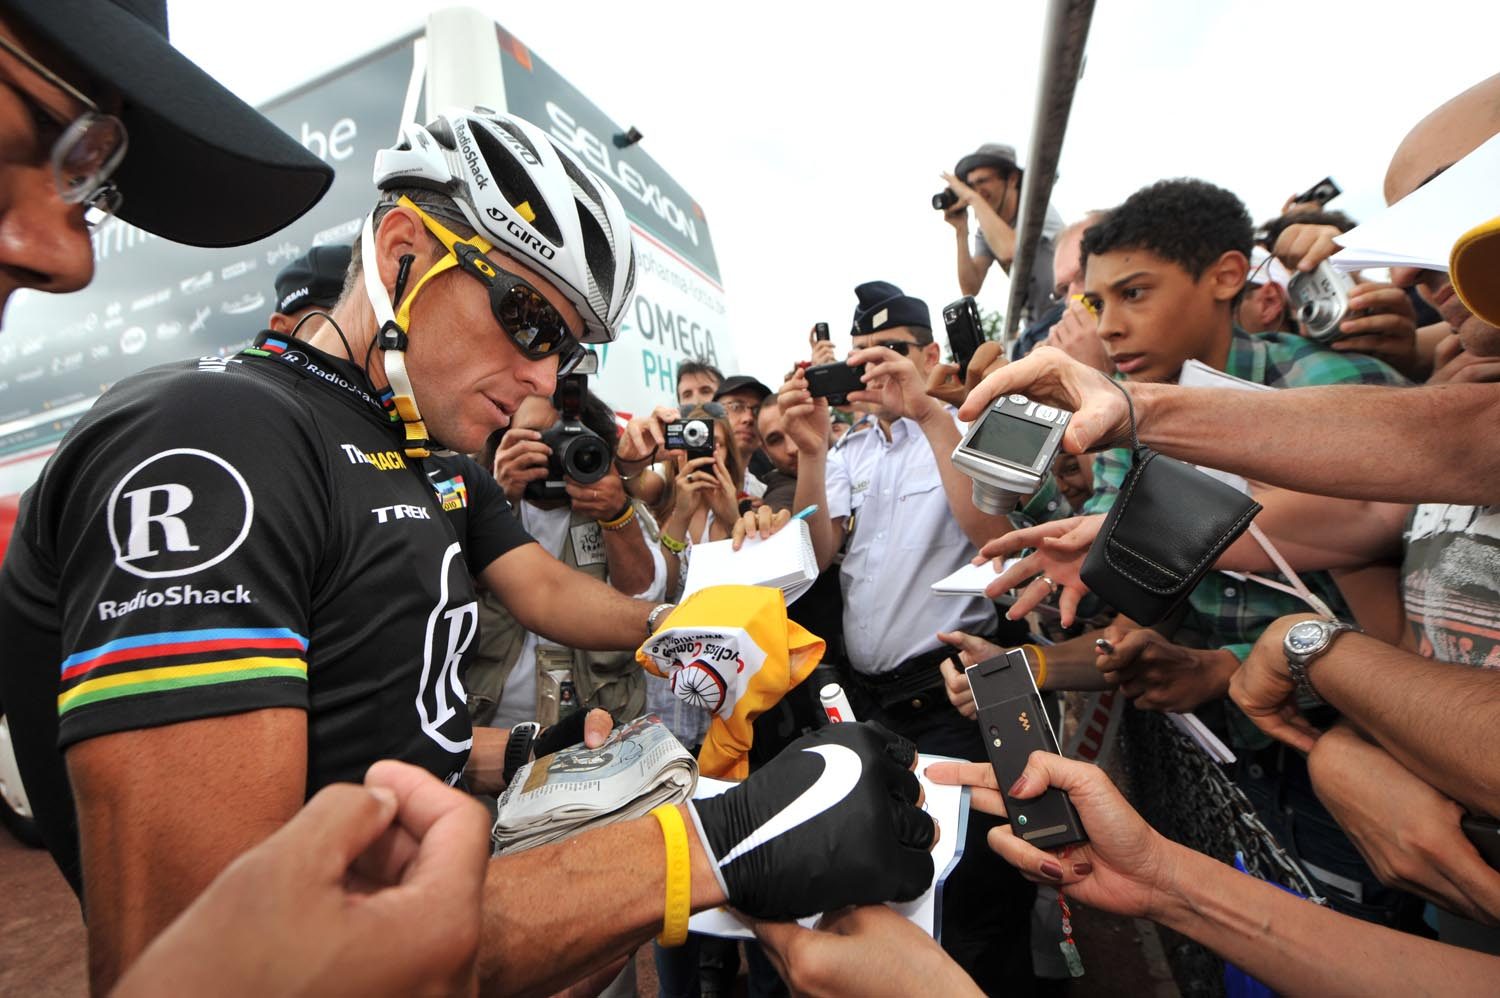 Lance Armstrong, Tour de France 2010, stage 20